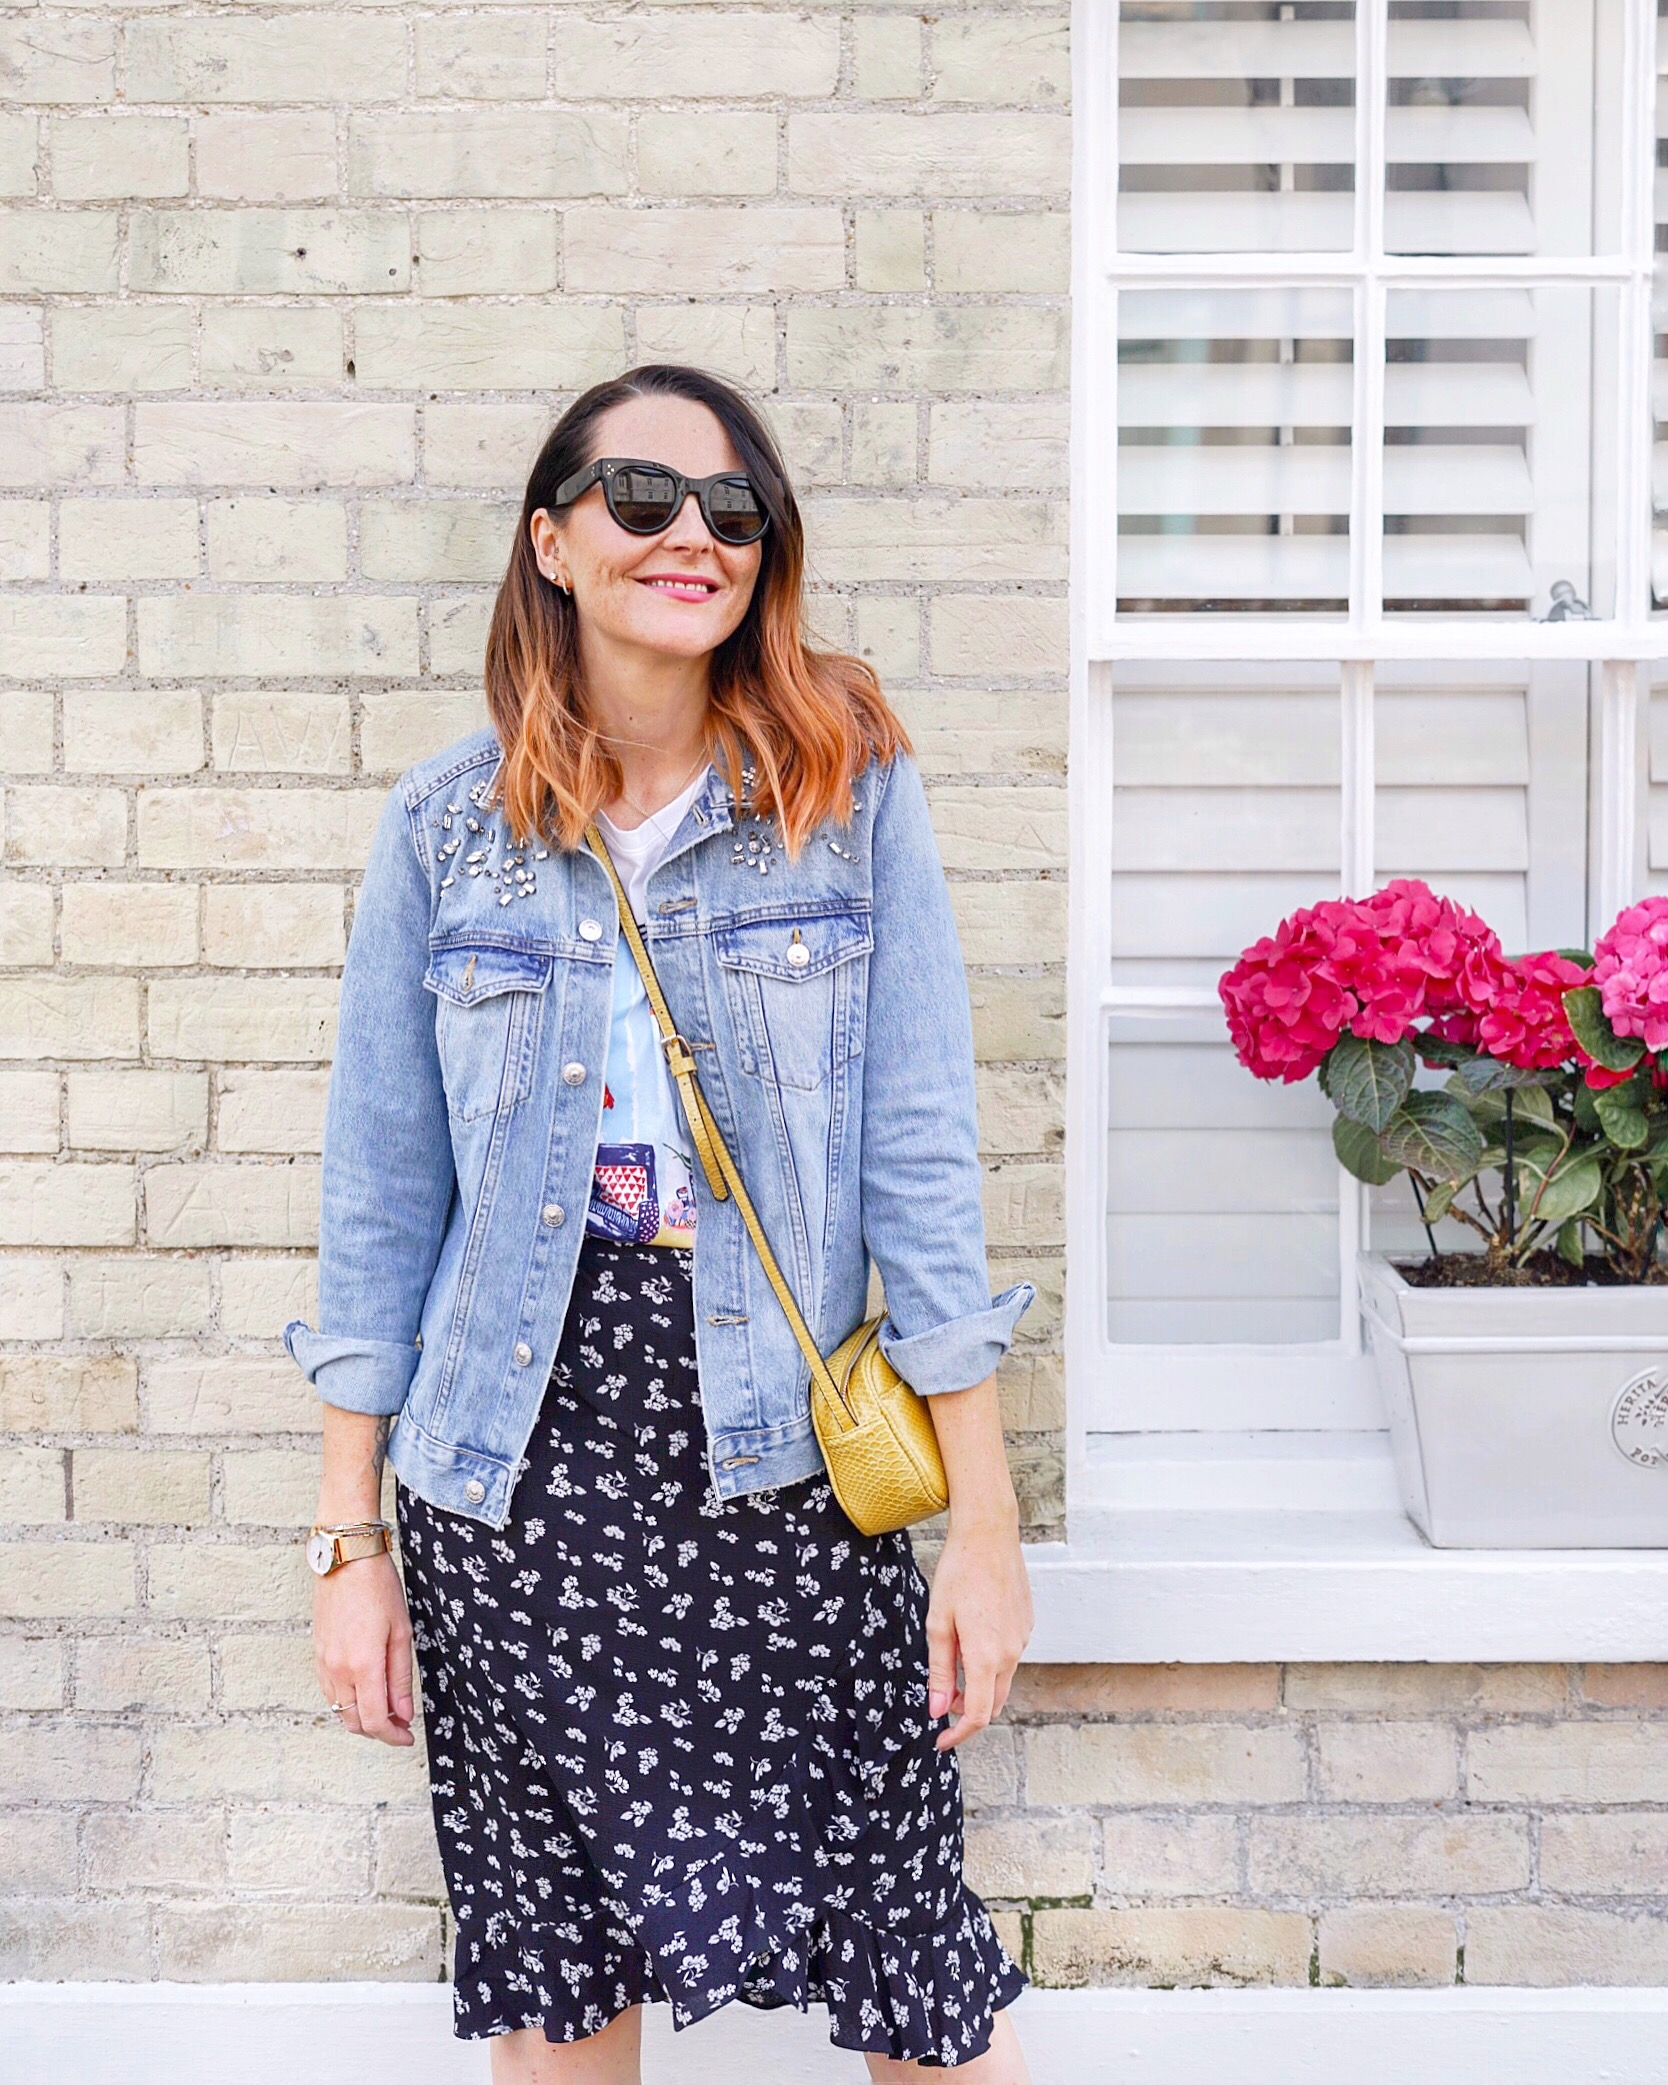 denim jacket with skirt outfit